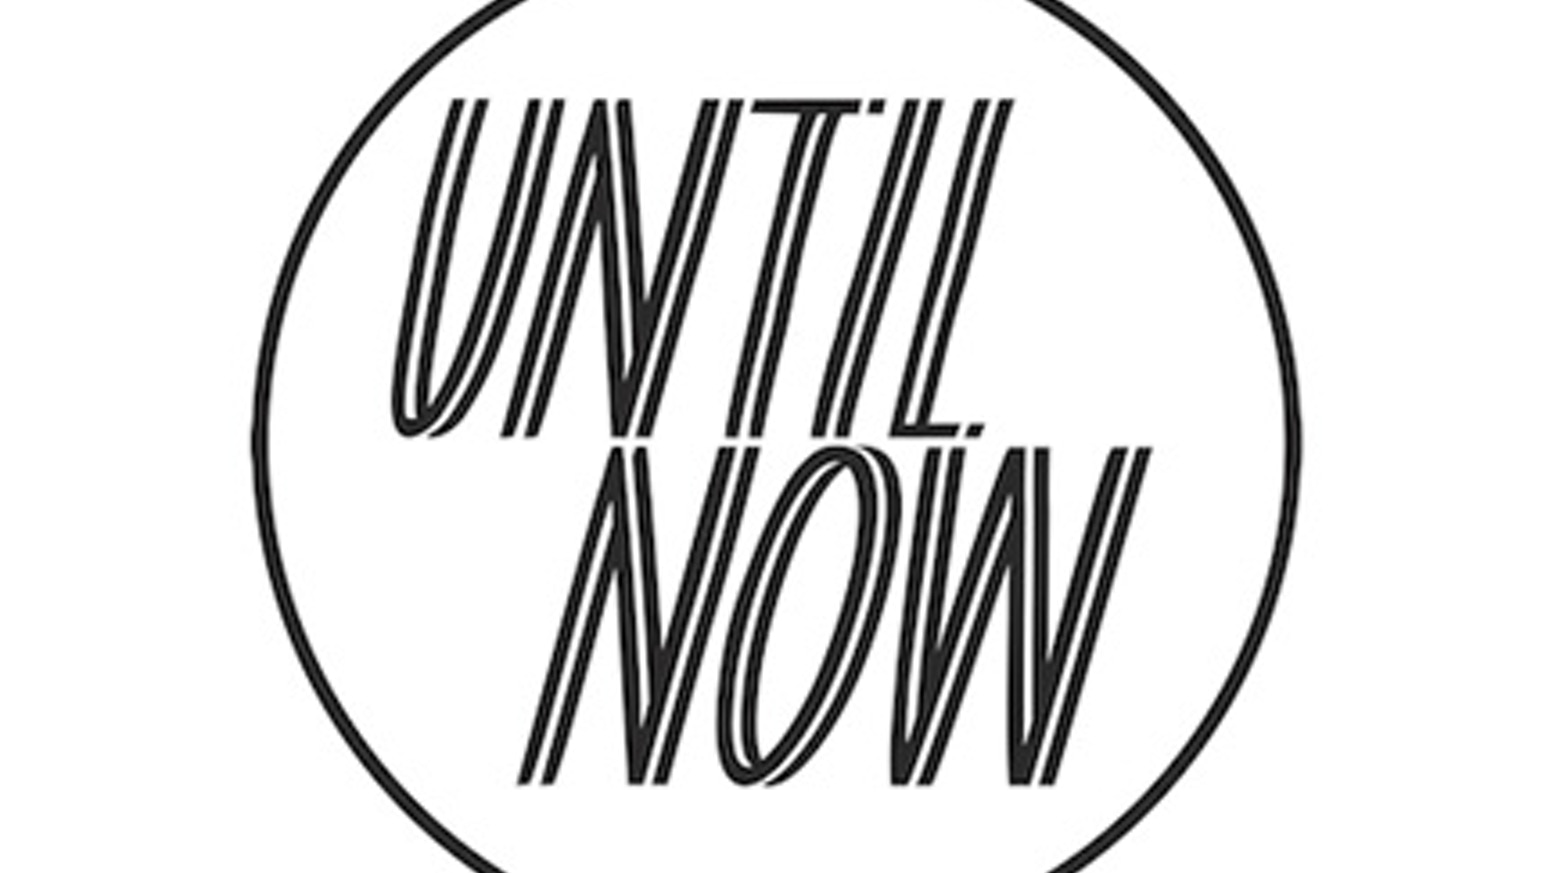 UNTIL NOW: A Magazine about Coming of Age by Alexandra